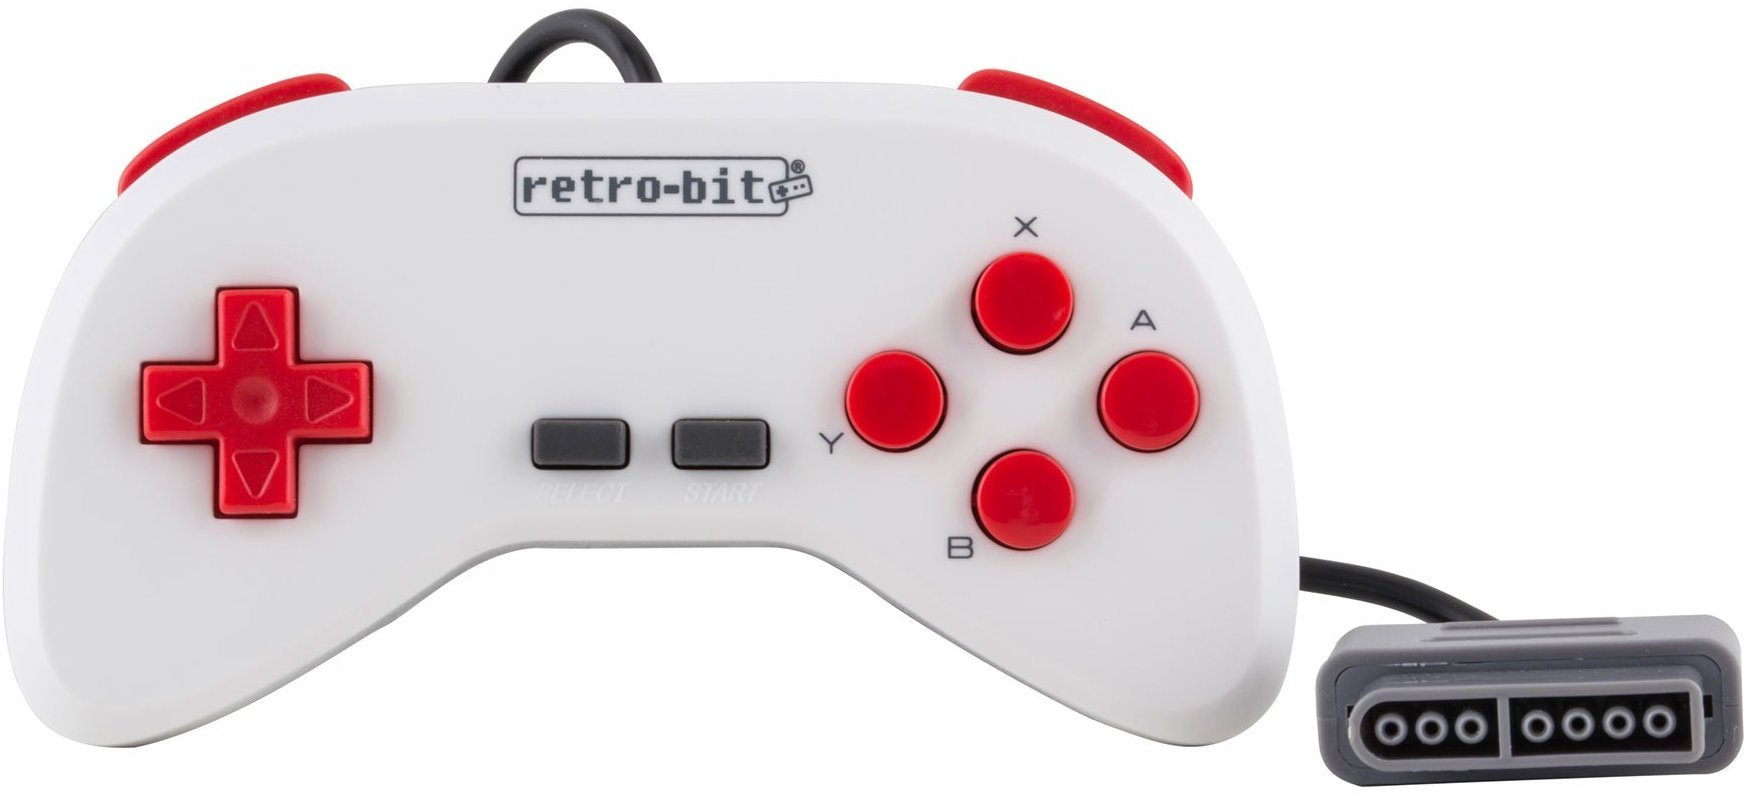 Retro-Bit Super Retro Trio HD Plus 720P 3 in 1 Console System (2019) Bundle with 1-Year Warranty from Geek Theory - for NES, SNES, and Sega Genesis Original Game Cartridges - Red/White by Geek Theory (Image #6)